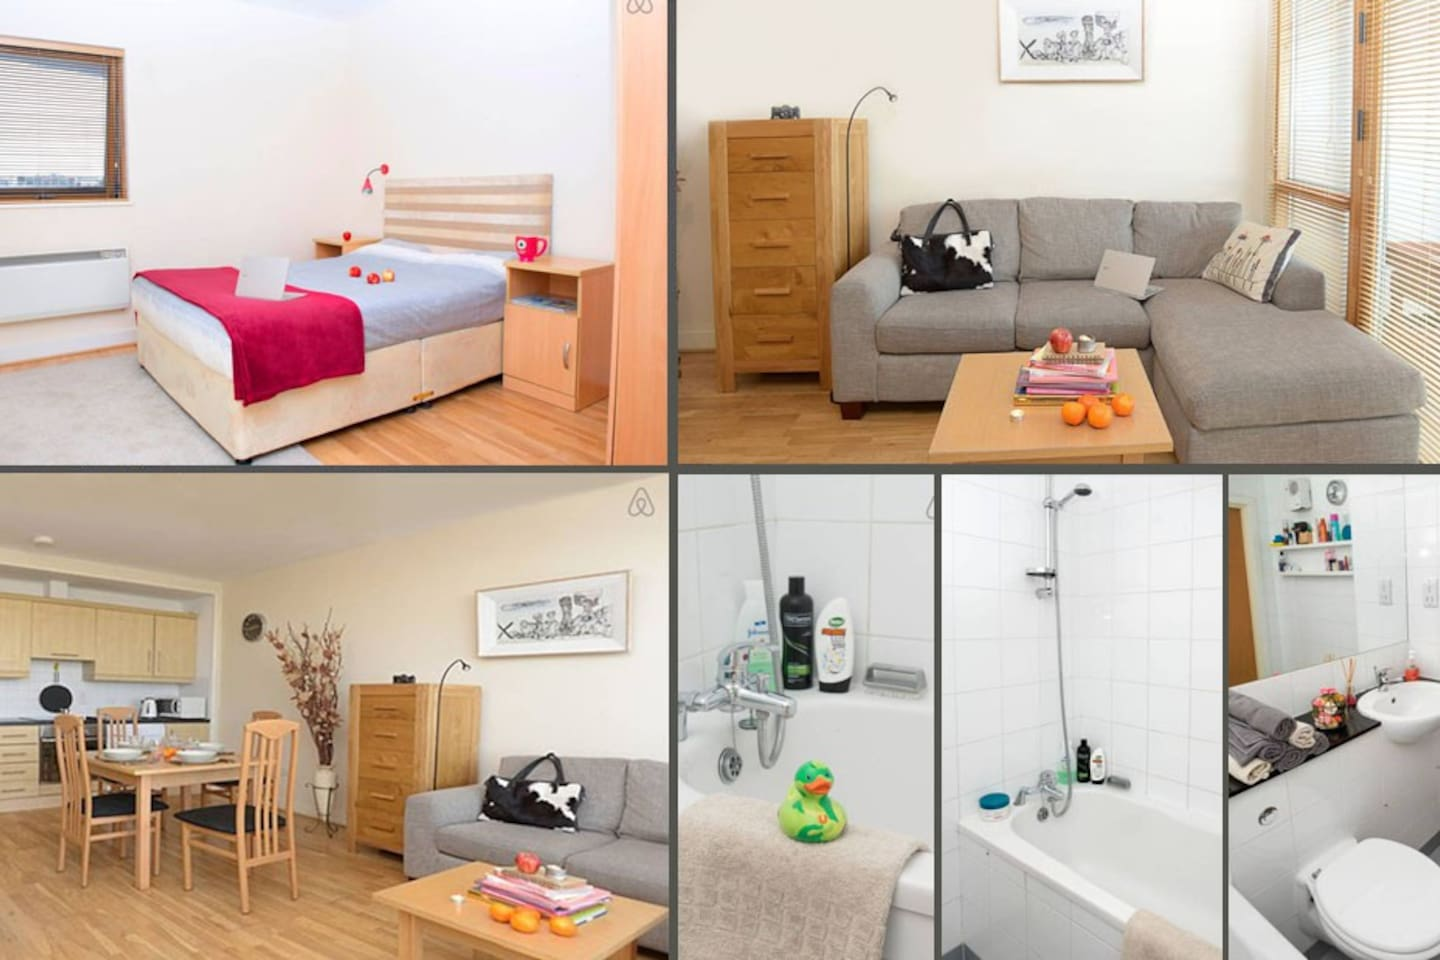 Double bedroom near the Aiport wifi